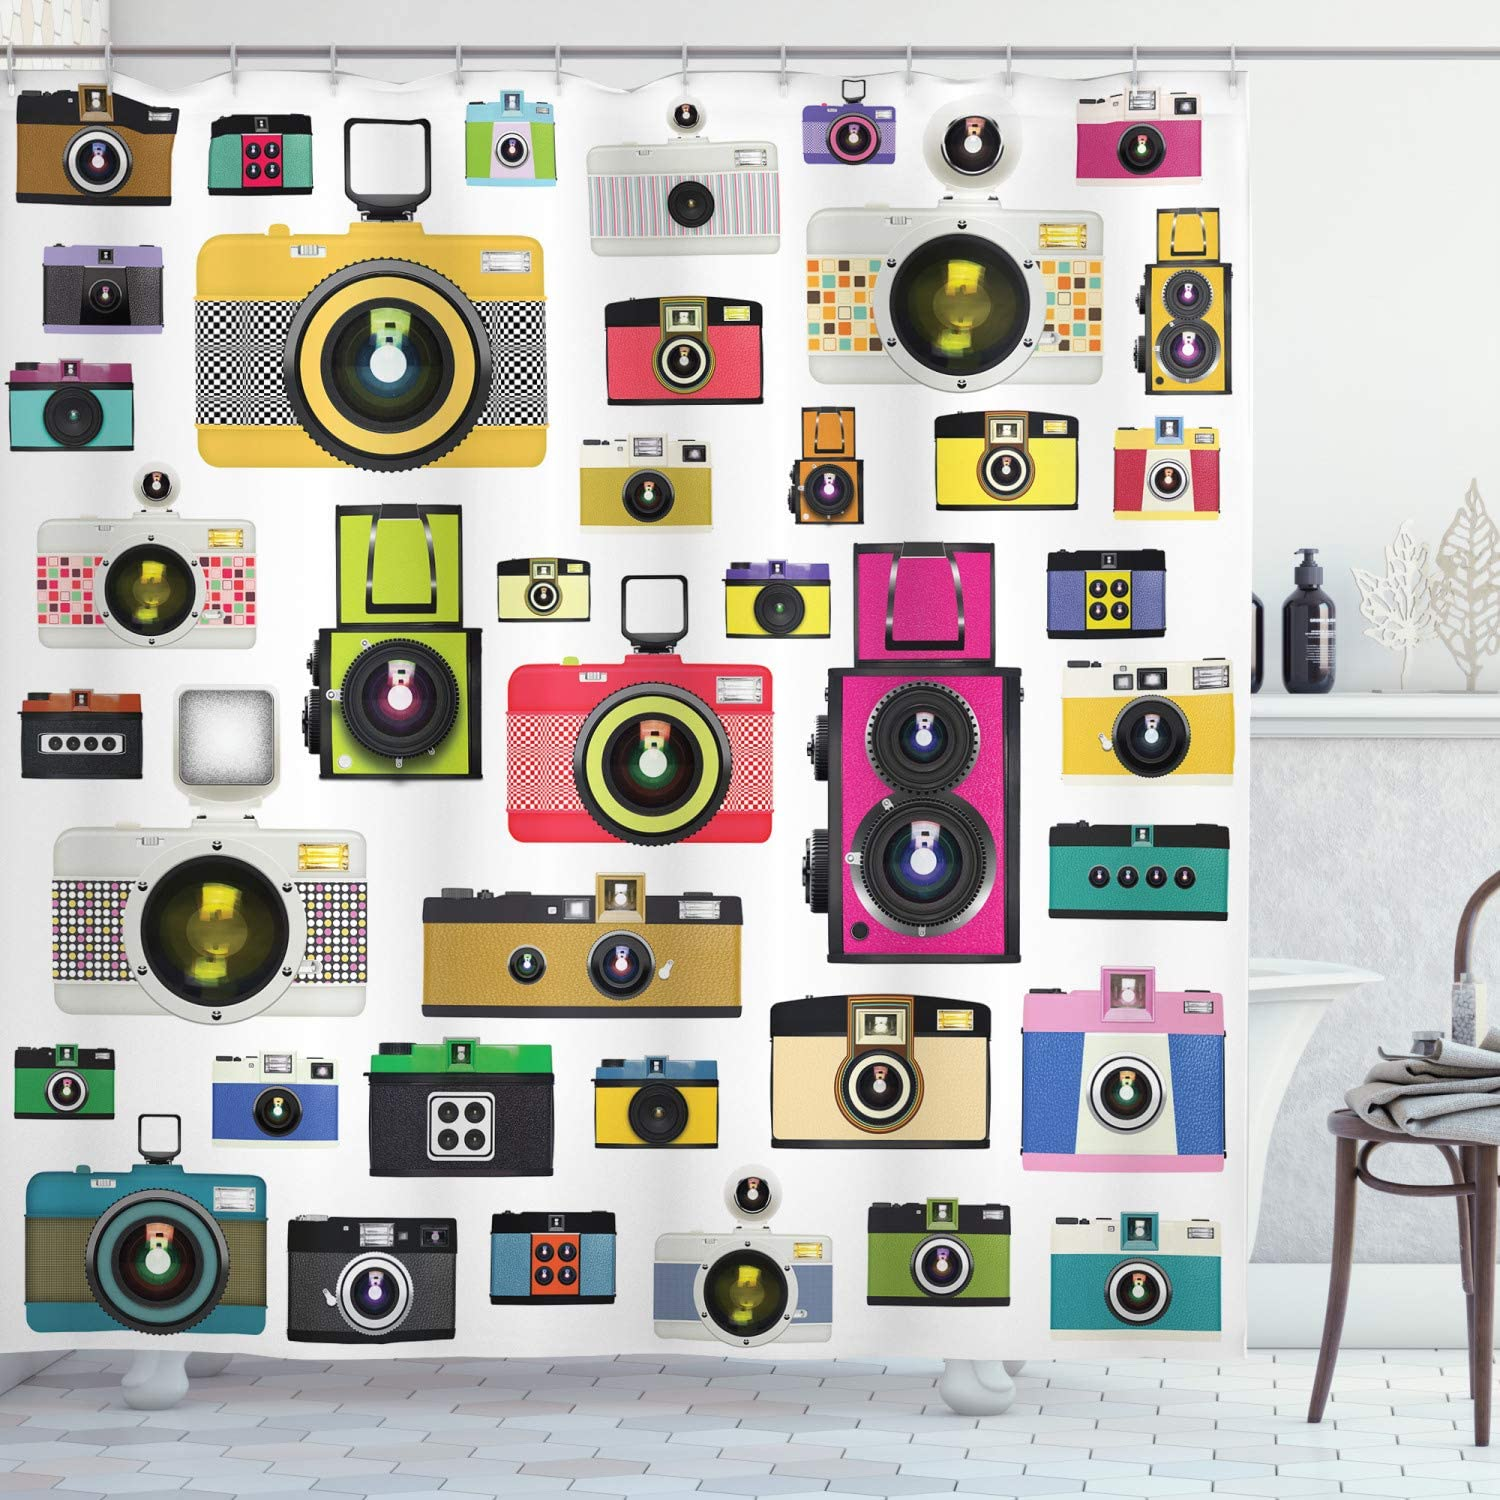 """Ambesonne Vintage Shower Curtain, Vintage Old Fashioned Photo Cameras Hobby Studio Themed Graphic Design, Cloth Fabric Bathroom Decor Set with Hooks, 70"""" Long, Pink White"""